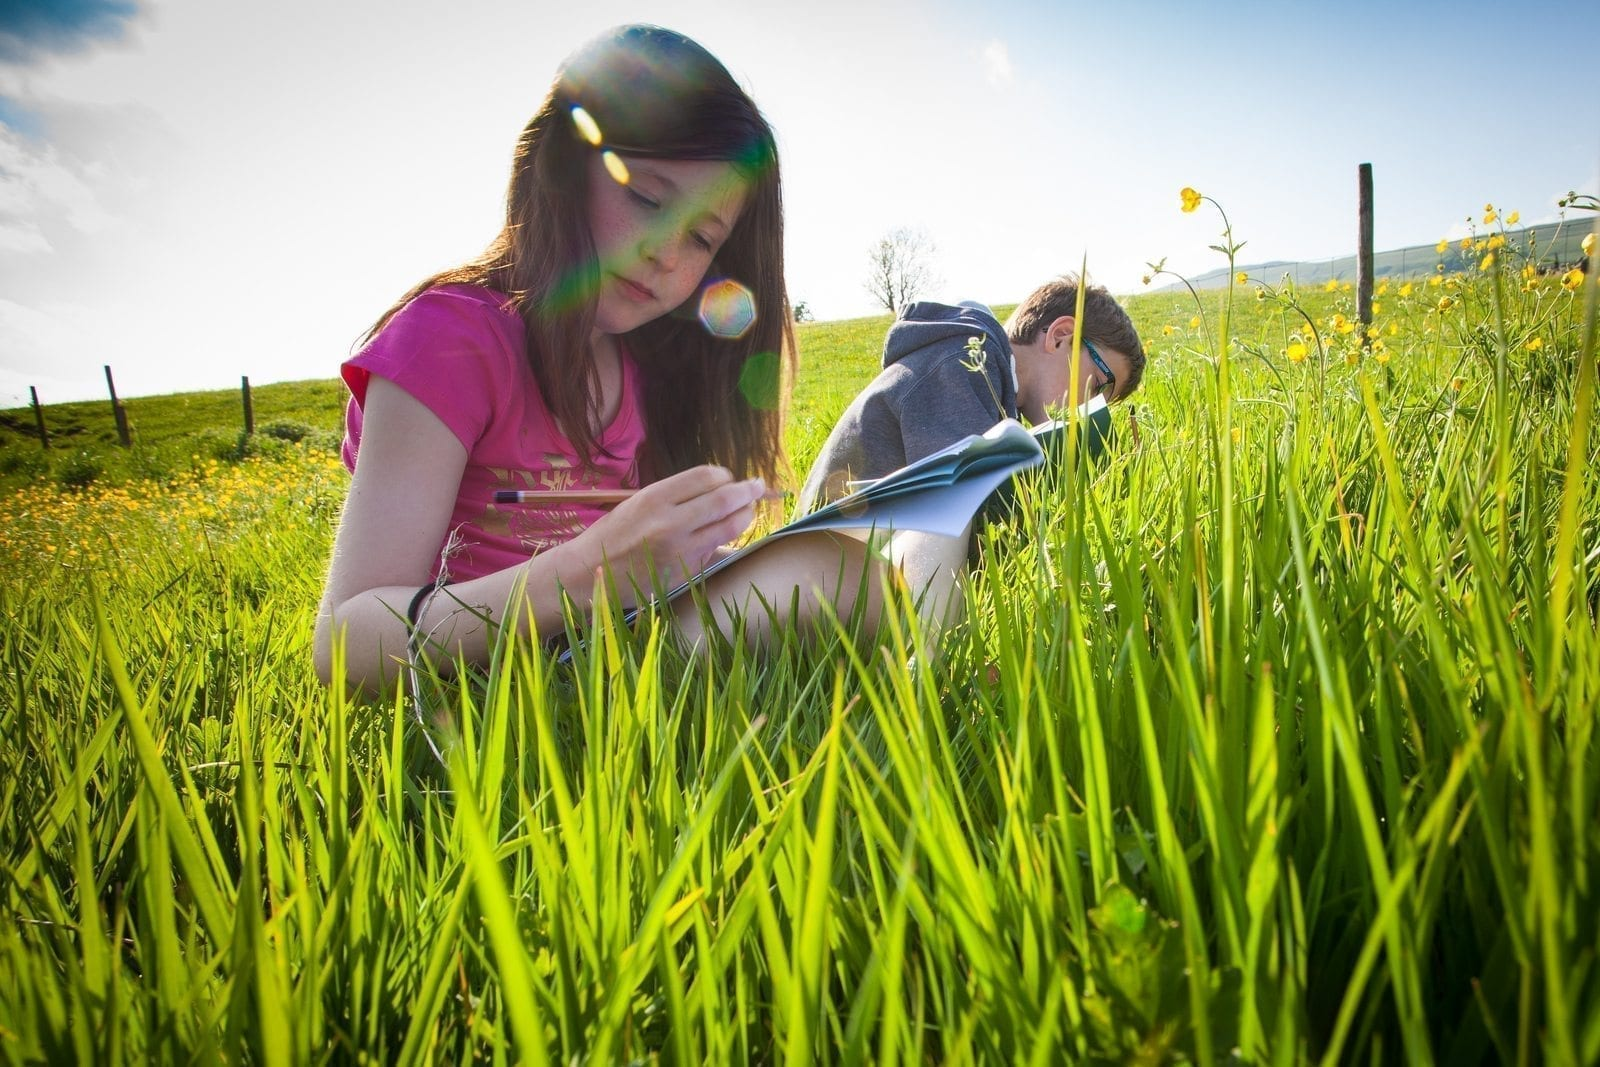 girl grass drawing microadventure